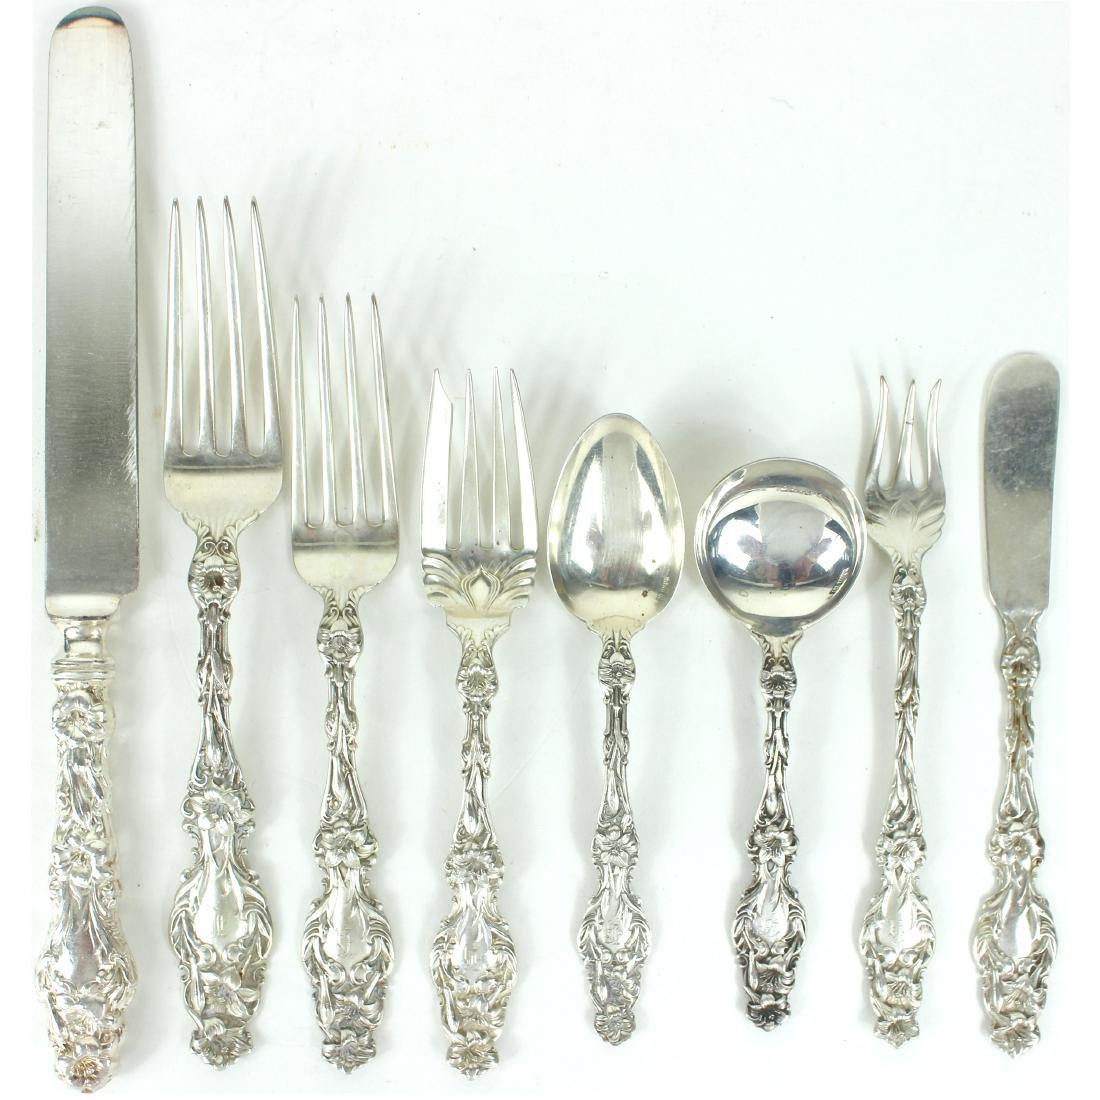 WHITING STERLING SILVER FALTWARE SET 'LILY' C.1900 - 2